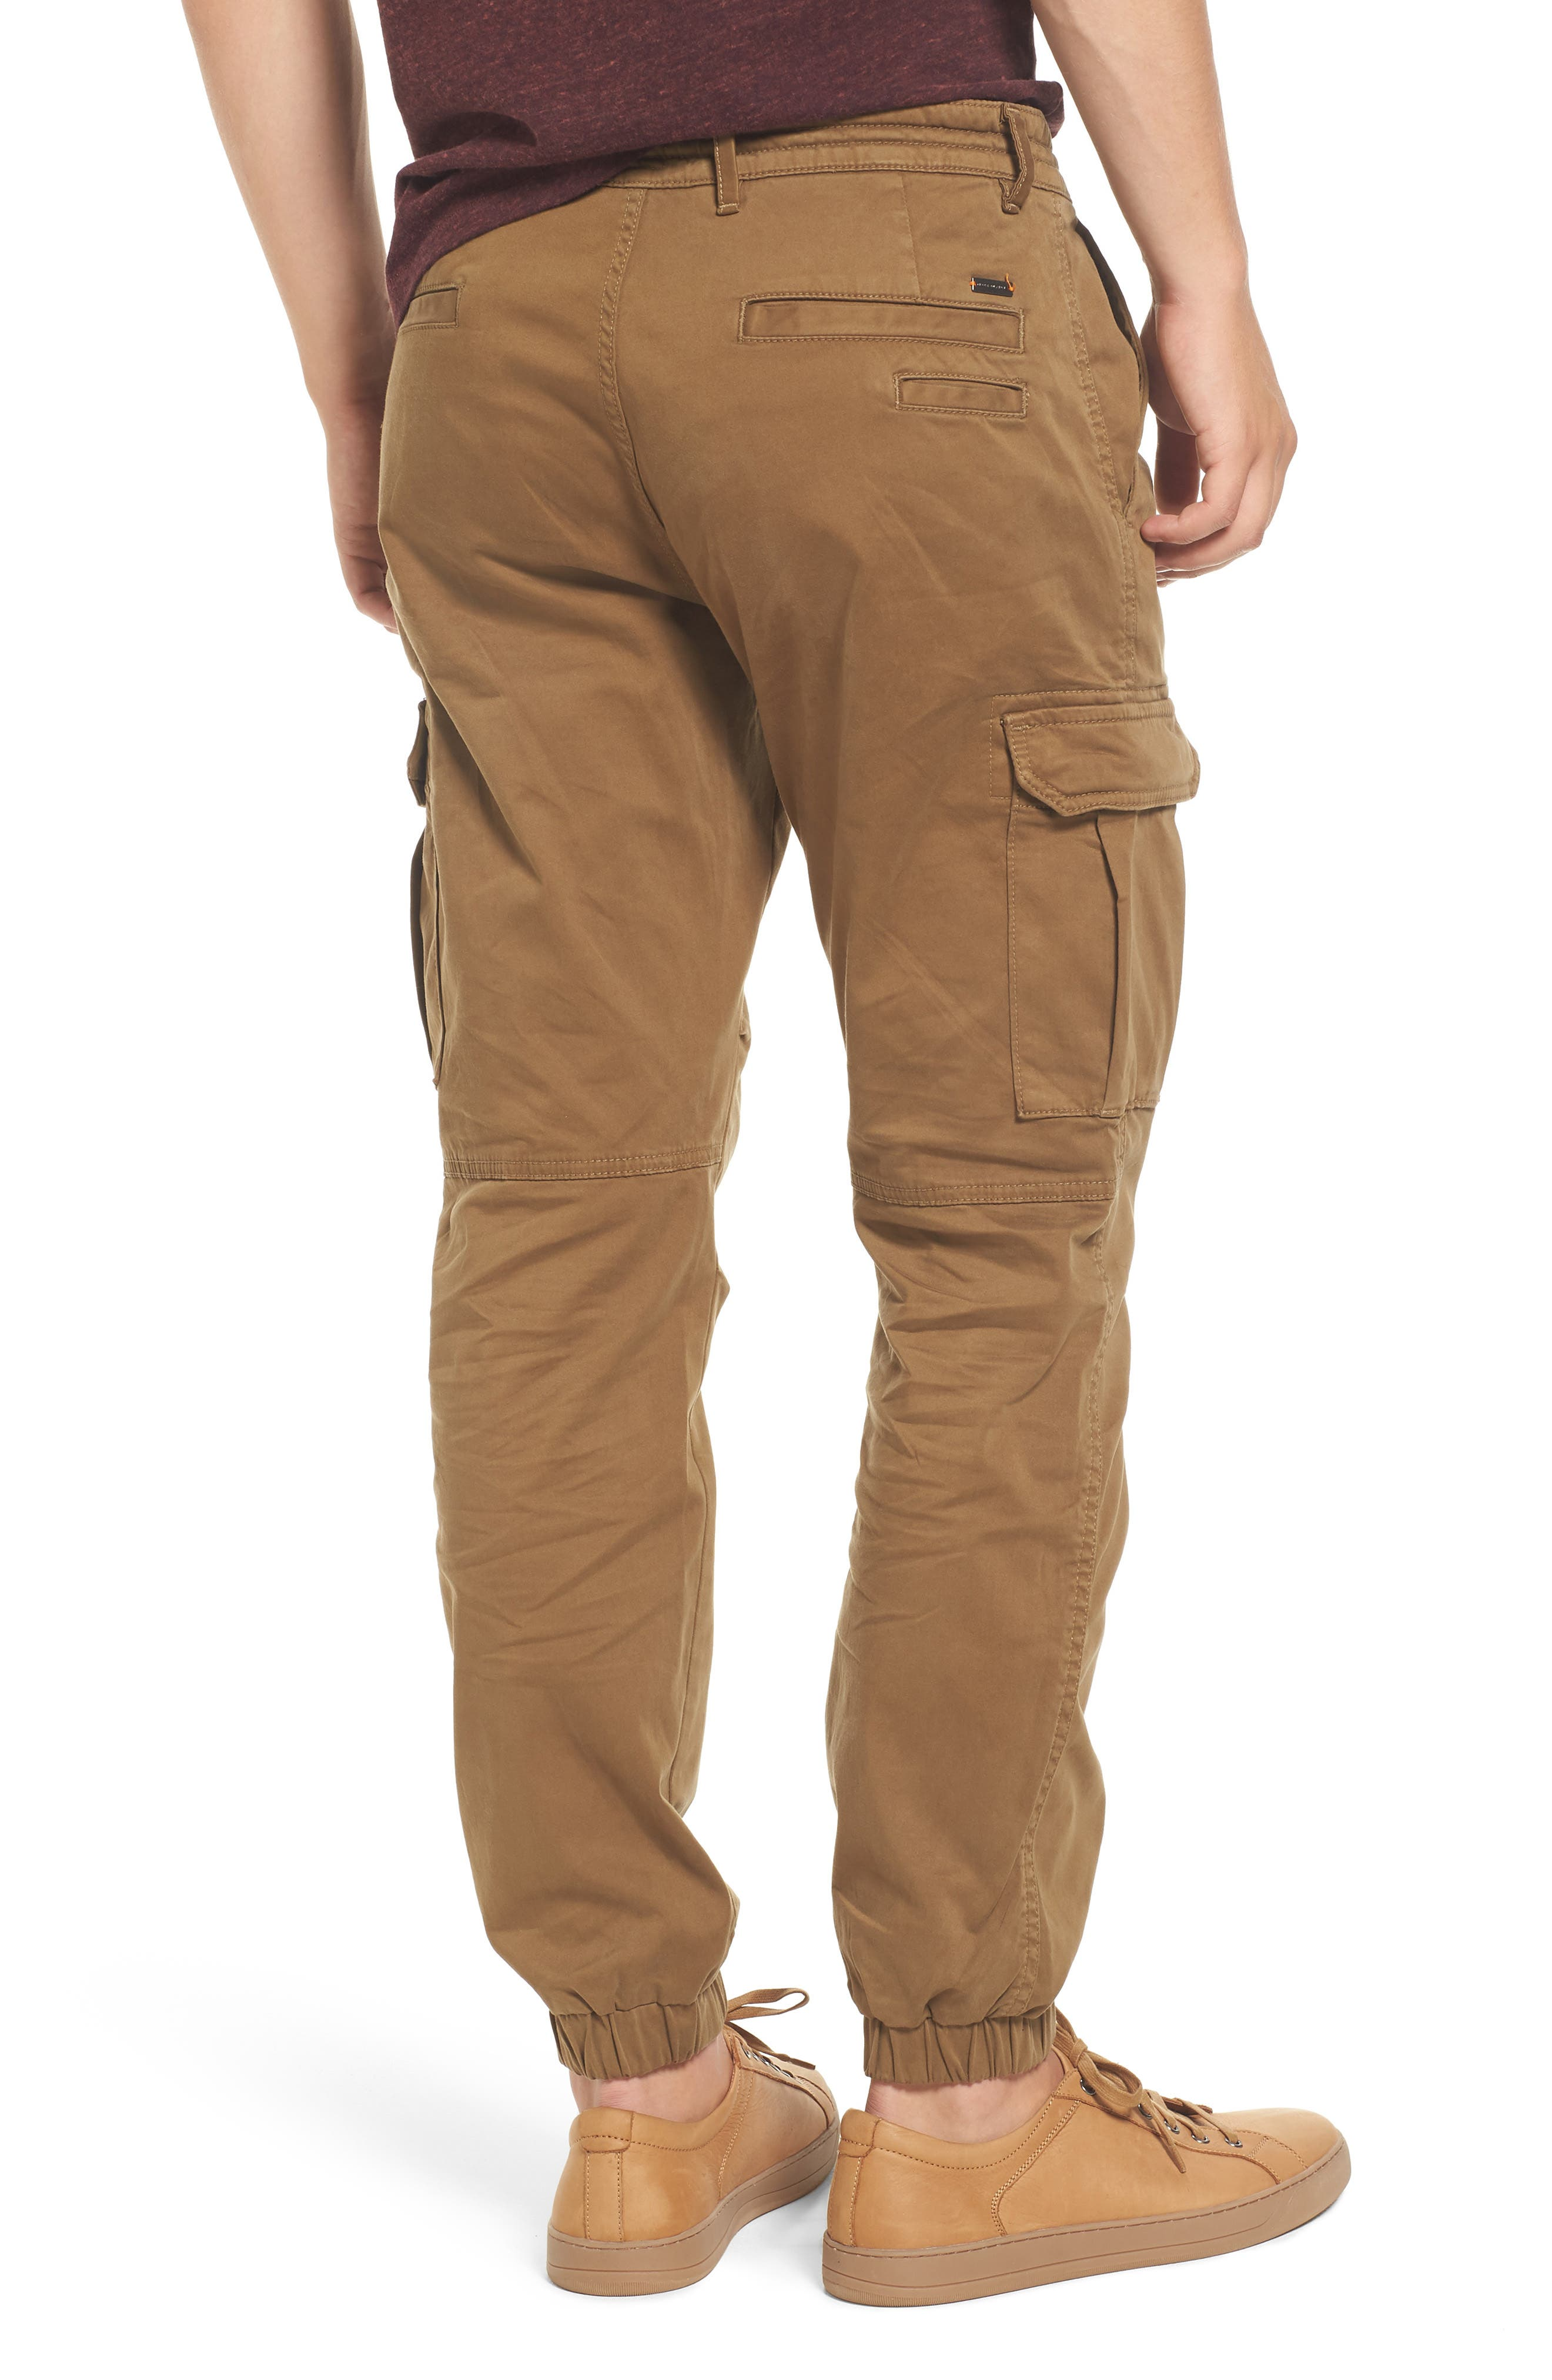 Shay 2 Cargo Pants,                             Alternate thumbnail 2, color,                             280